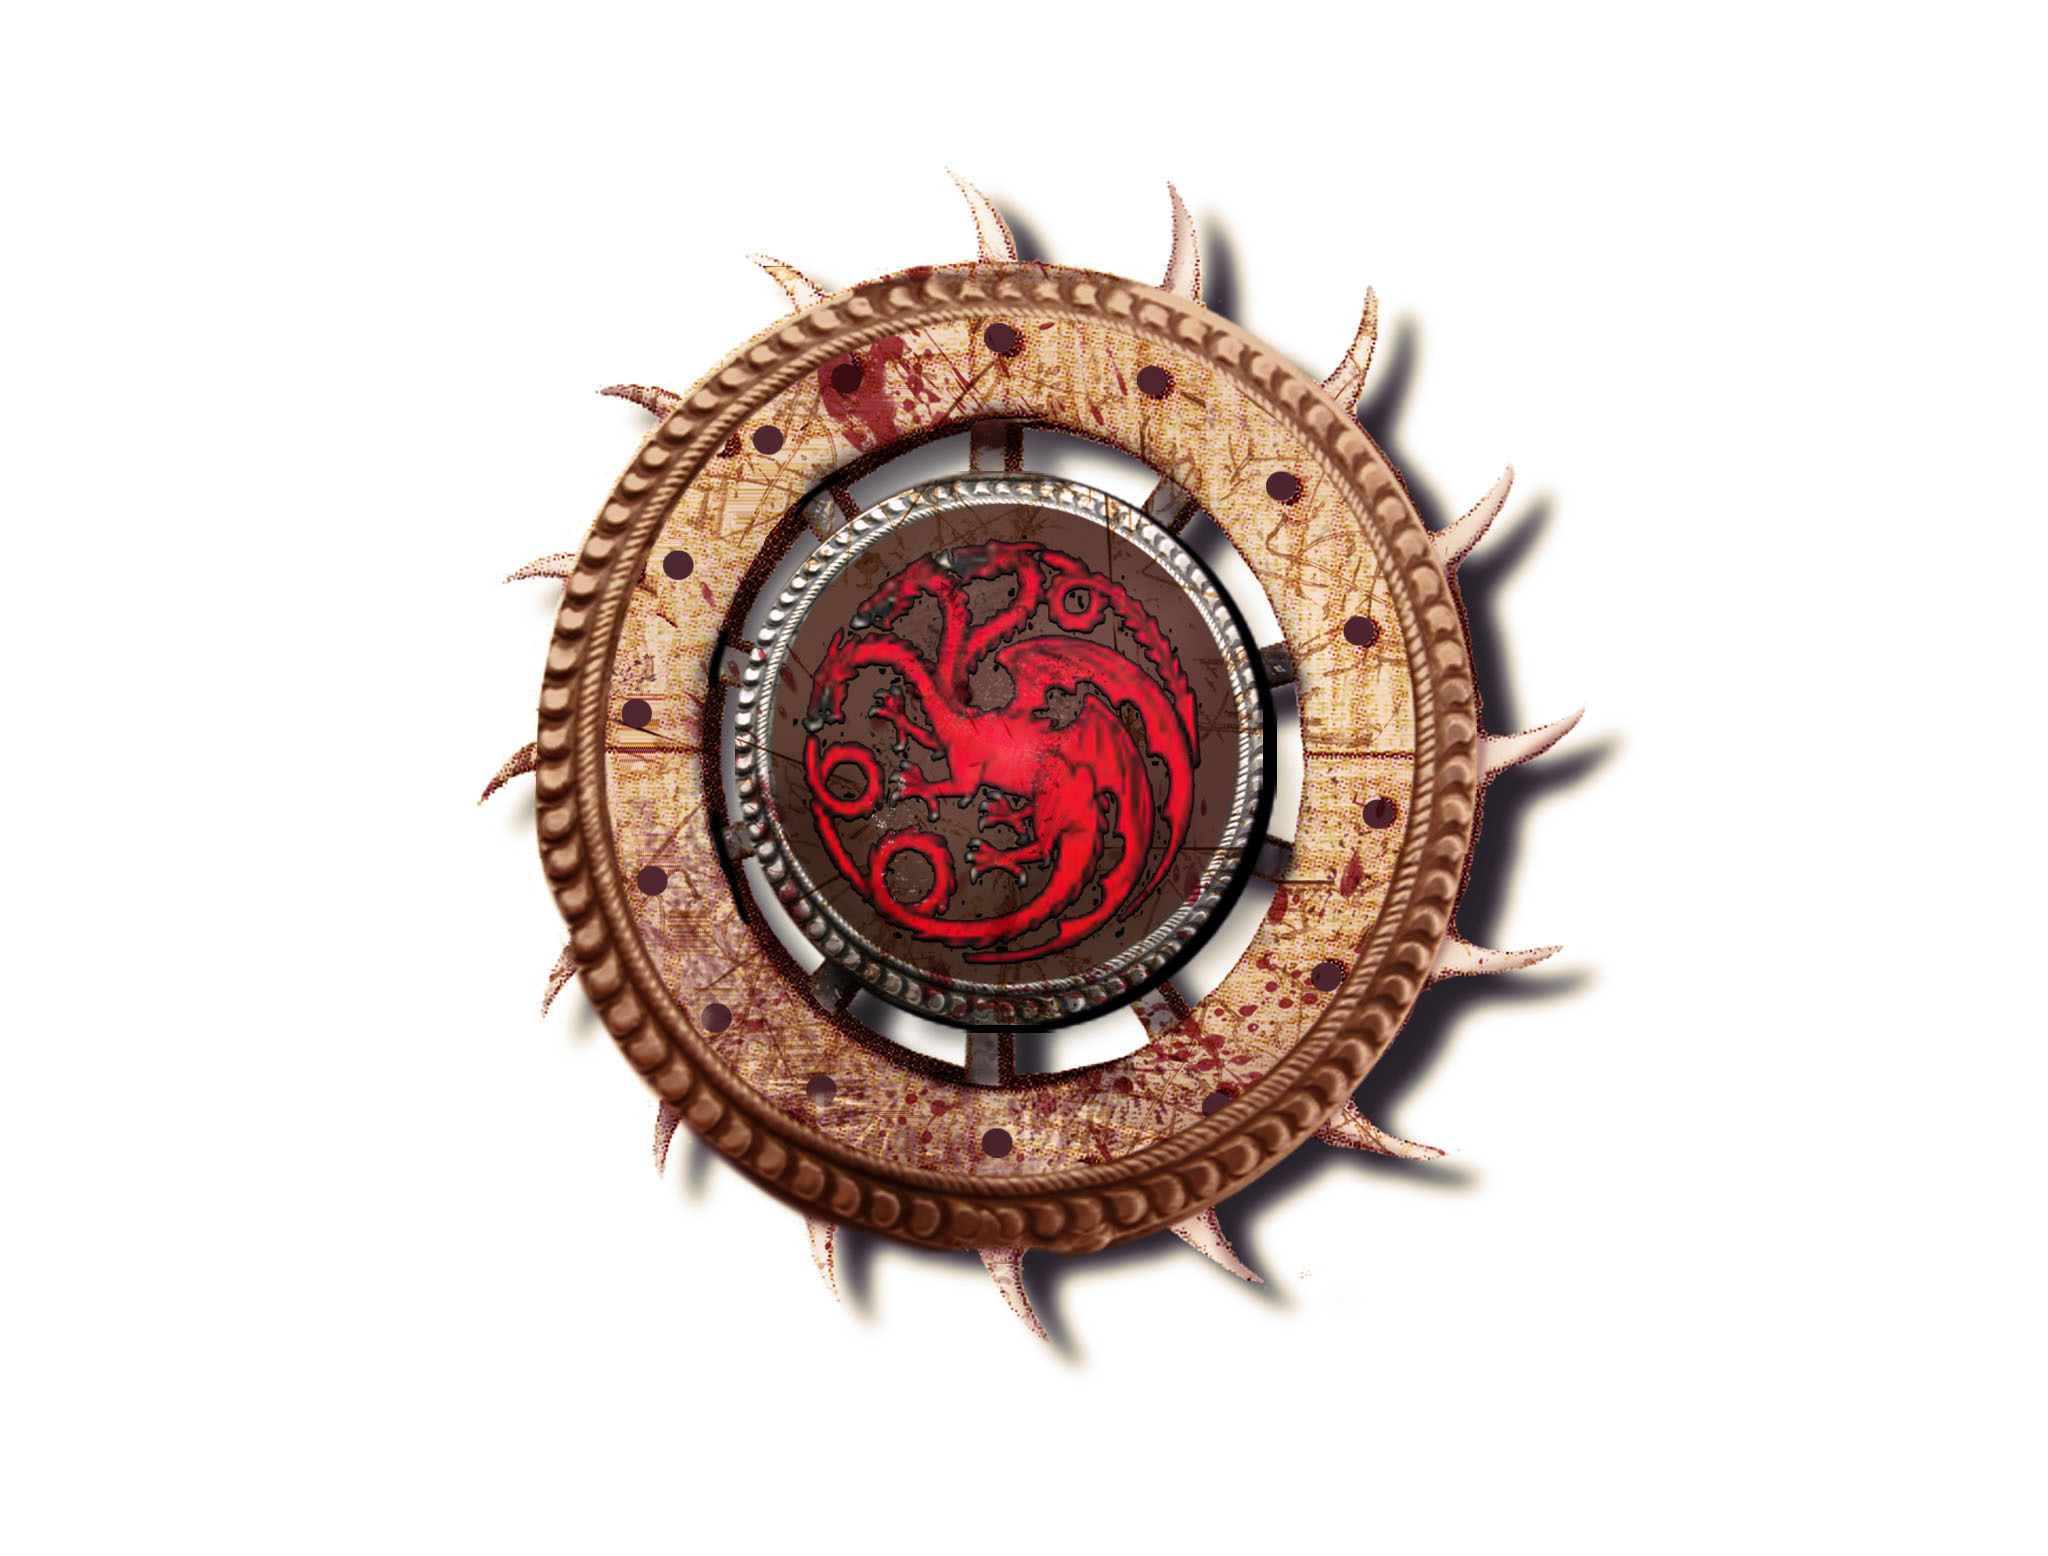 House sigil examples